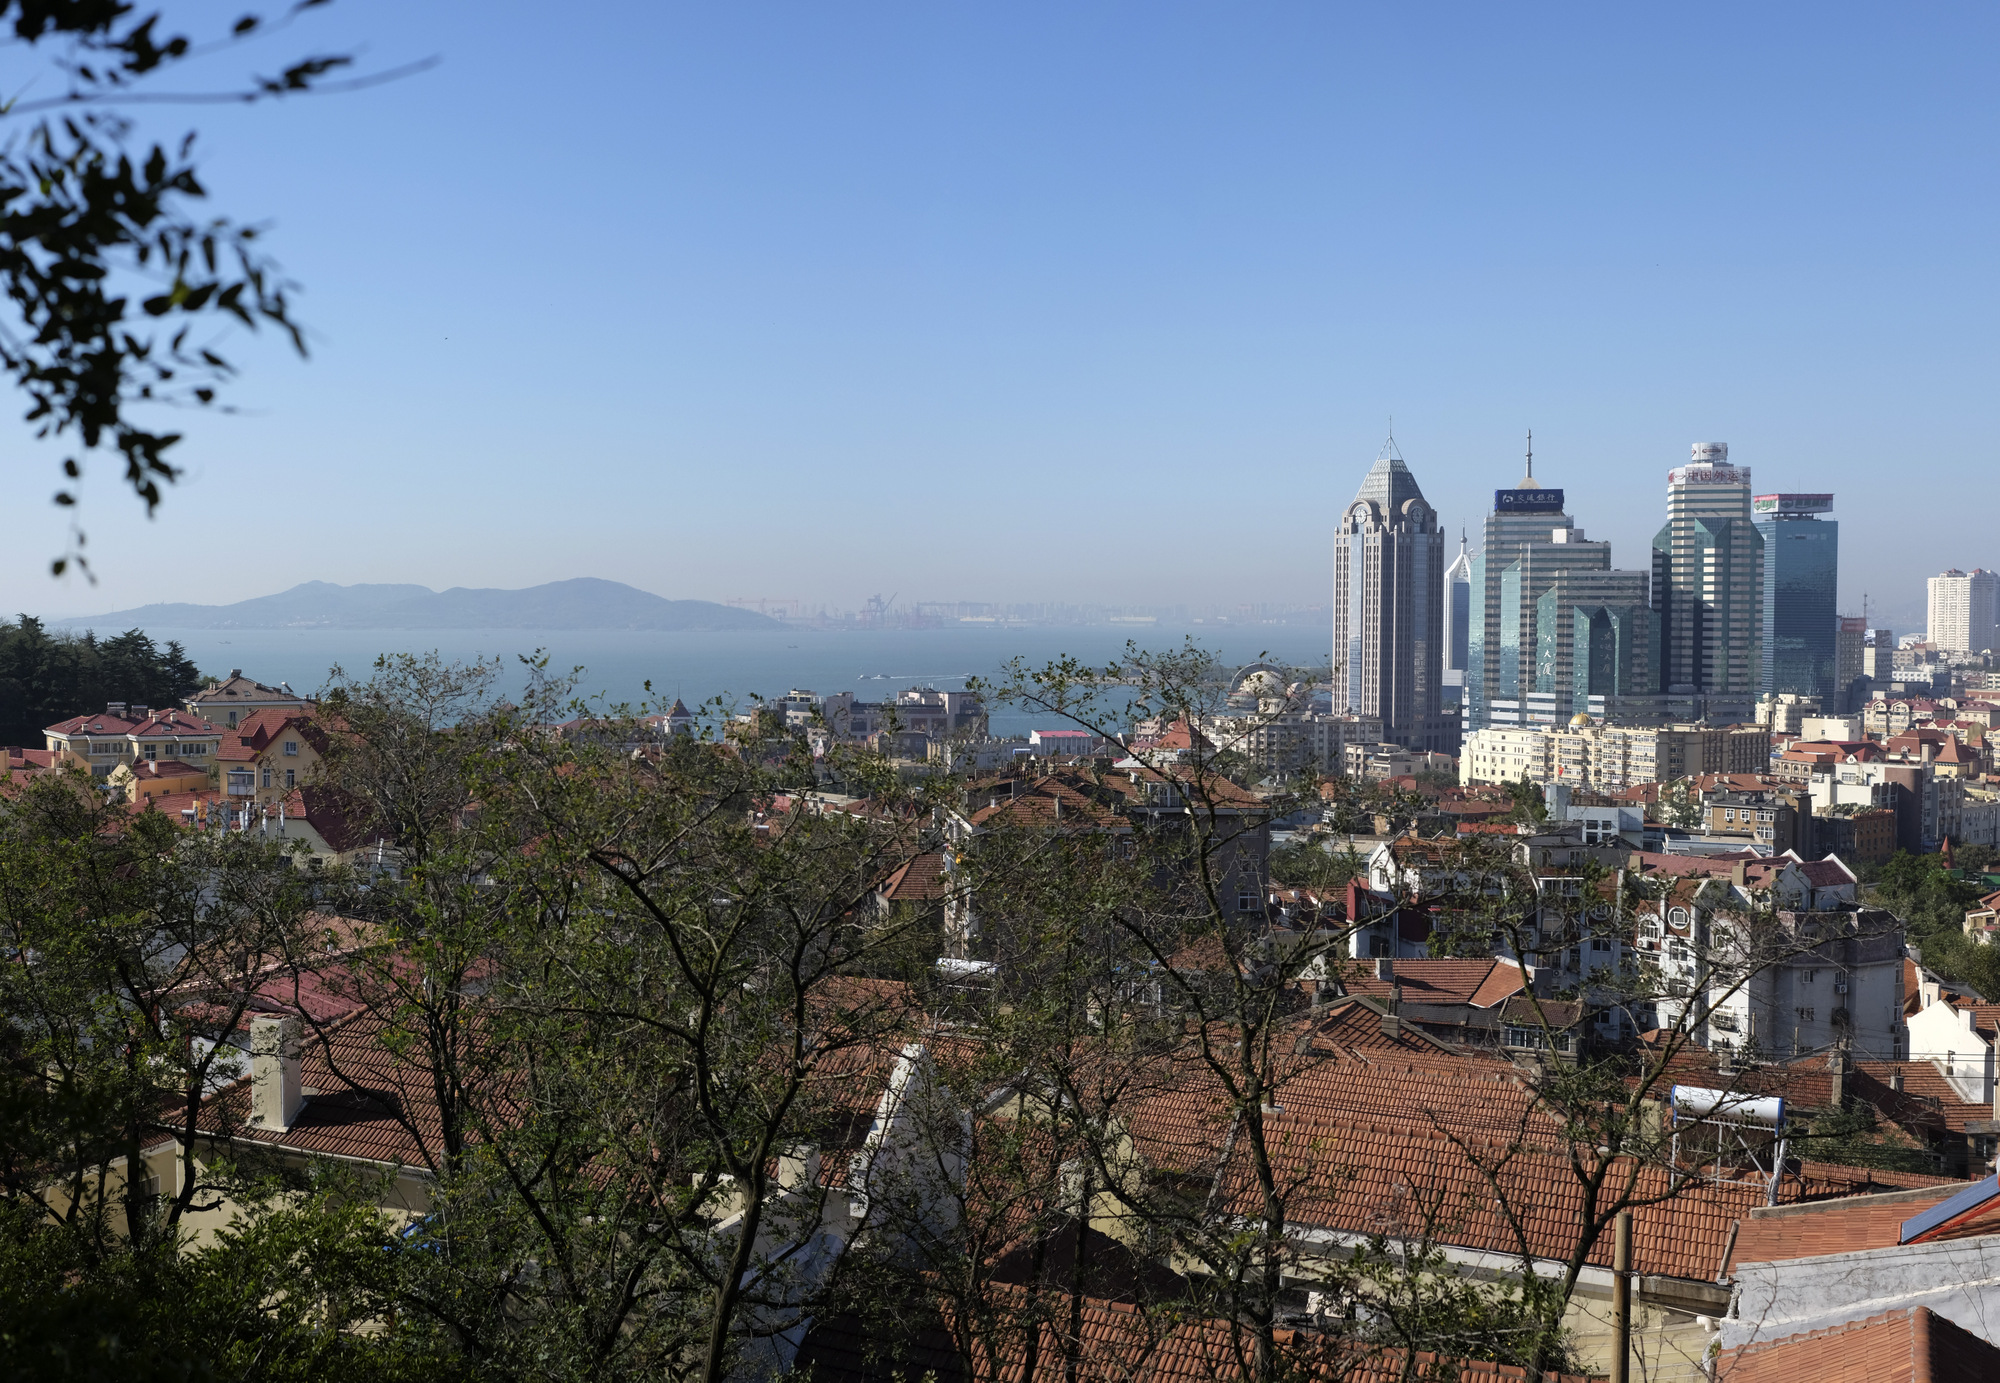 Pano_QingDao_Observatory_view